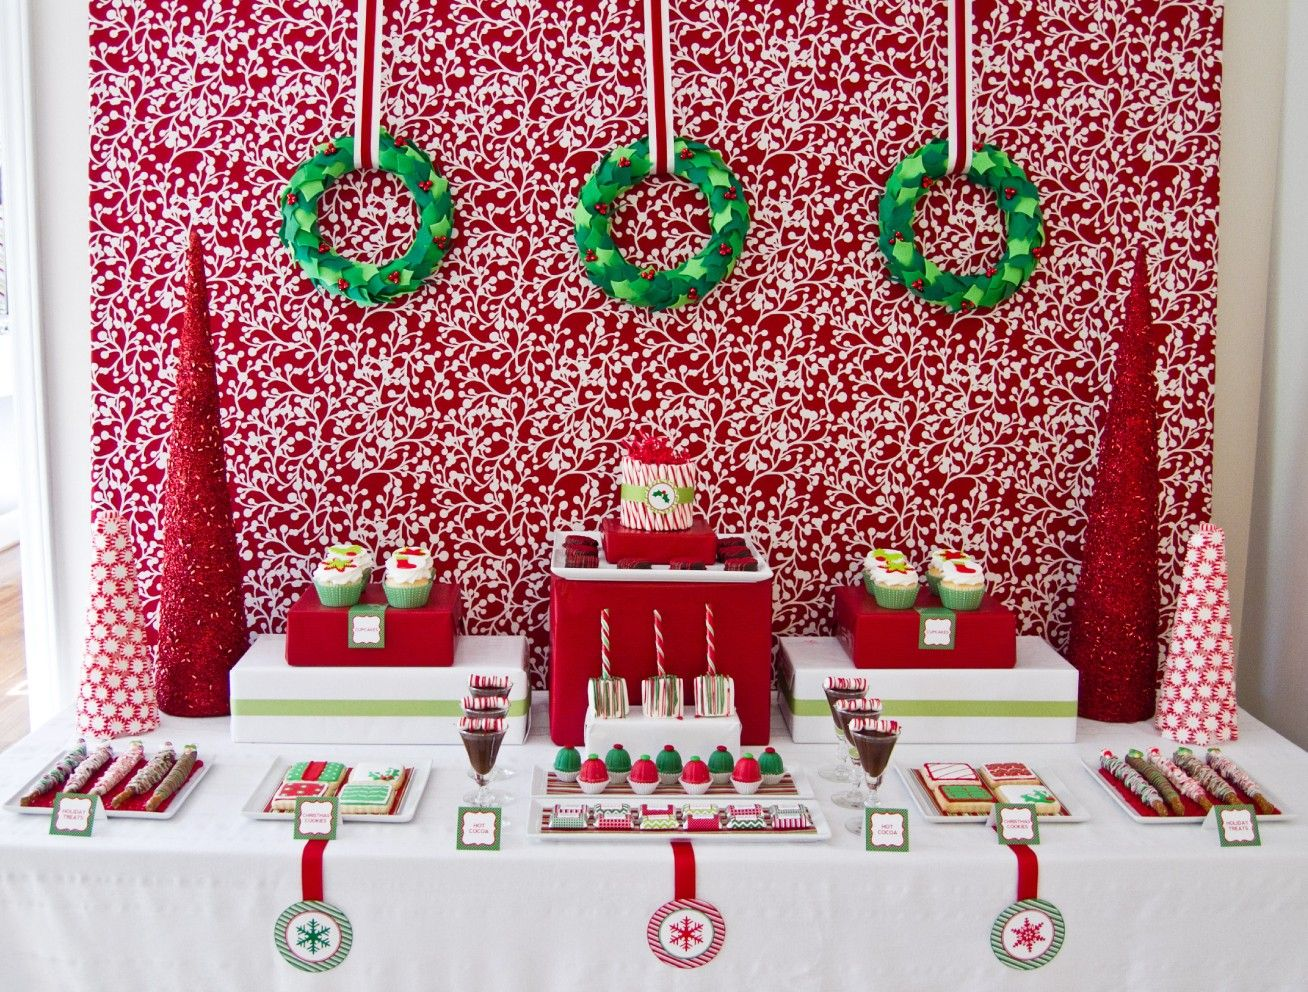 Christmas Tables Inspirations Christmas Party Table Christmas Buffet Table Christmas Buffet